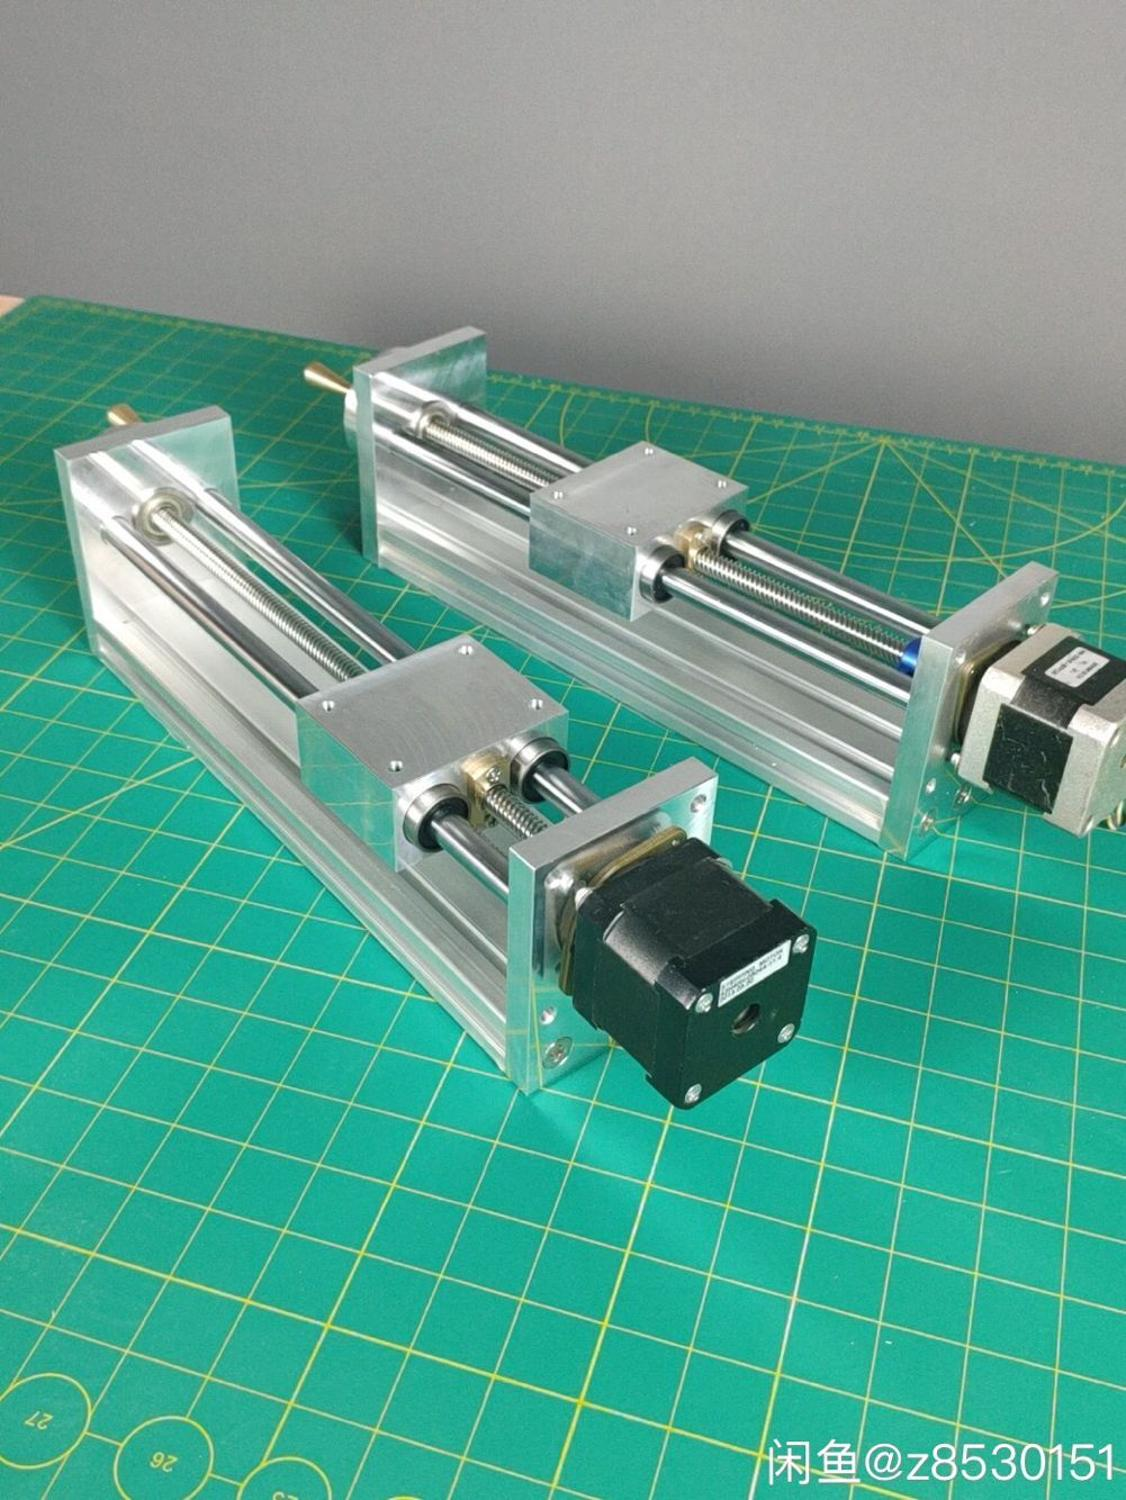 NEMA17 Stepper Motor CNC Z AXIS SLIDE 200mm Profile Pitch1MM  FOR CNC ROUTER Linear Motion Kit For Reprap 3D Printer CNC Parts